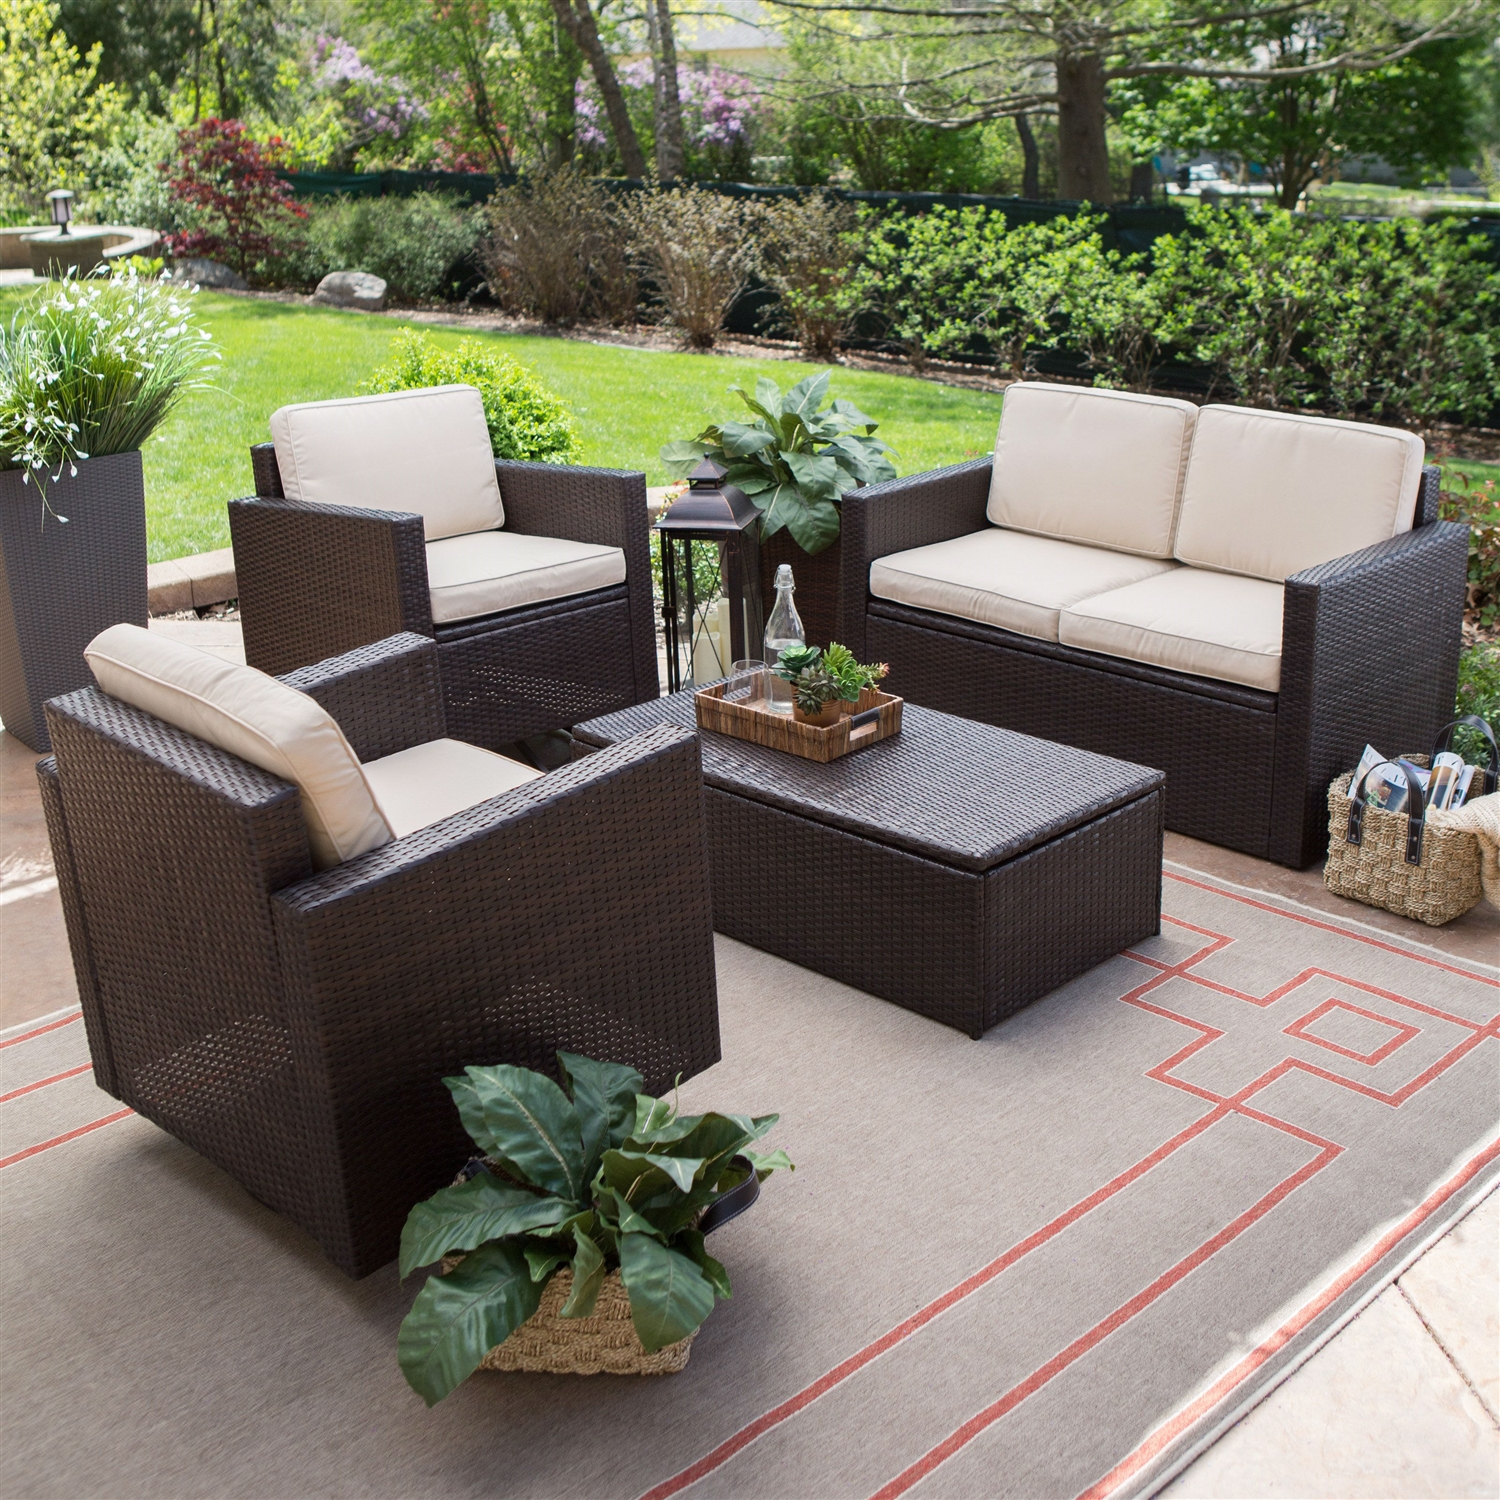 Outdoor Wicker Resin 4 Piece Patio Furniture Dinning Set With 2 Chairs Loveseat And Coffee Table Fastfurnishings